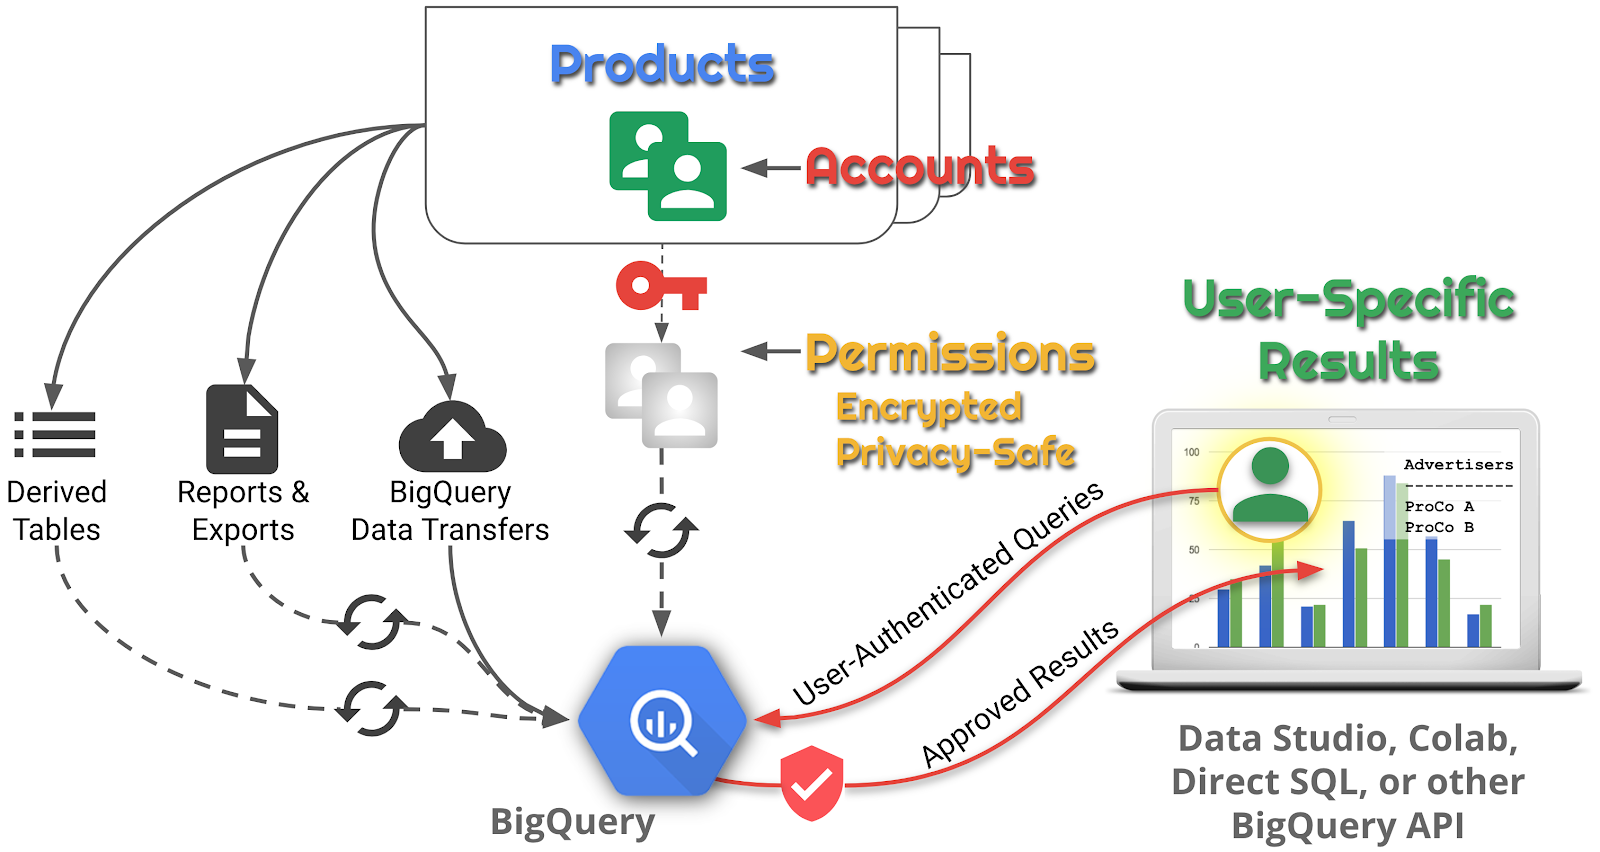 Share Data with Confidence: Cell-level Access Controls in BigQuery